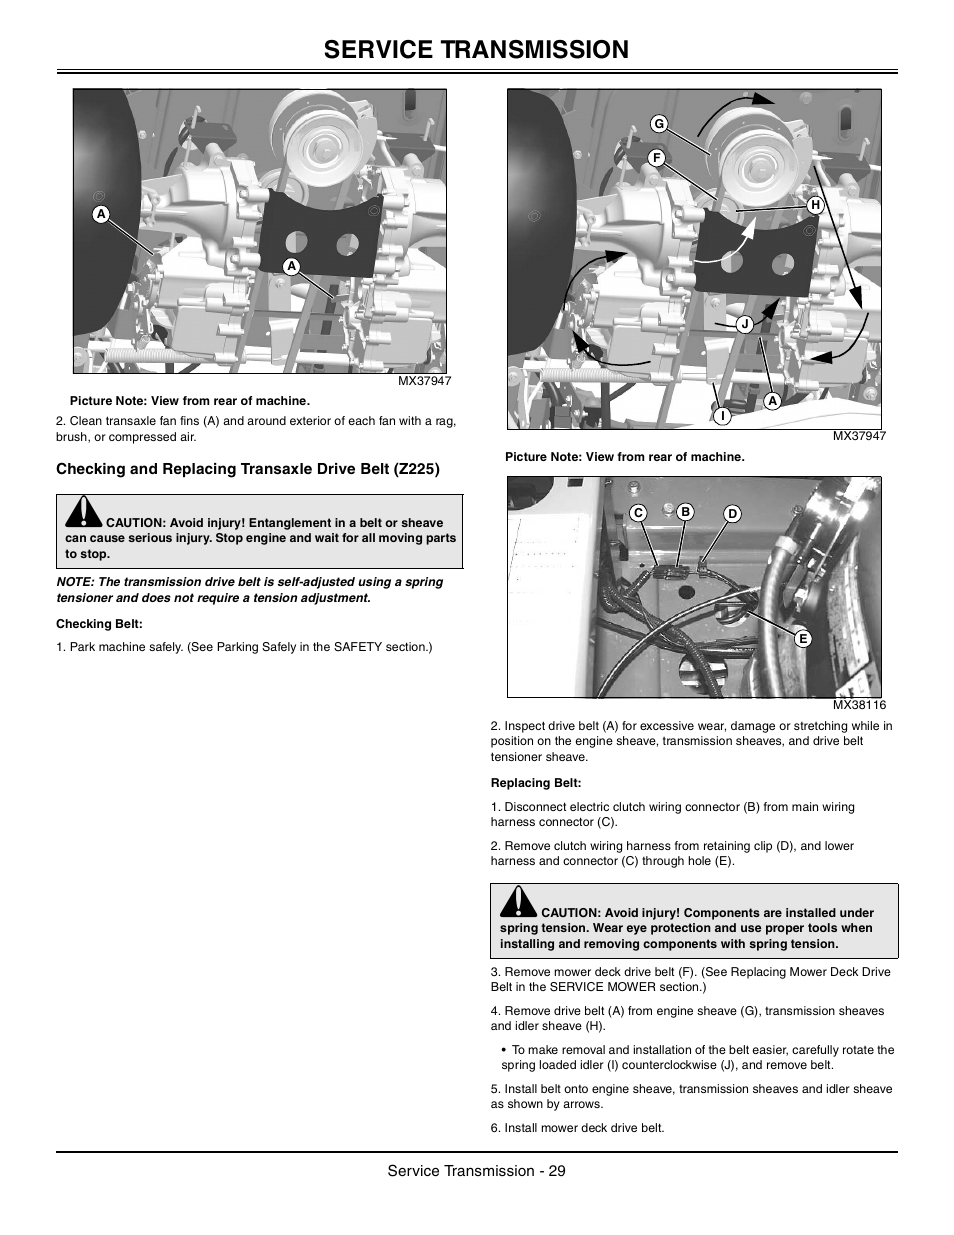 checking and replacing transaxle drive belt z225 checking belt checking and replacing transaxle drive belt z225 checking belt replacing belt john deere z425 user manual page 30 48